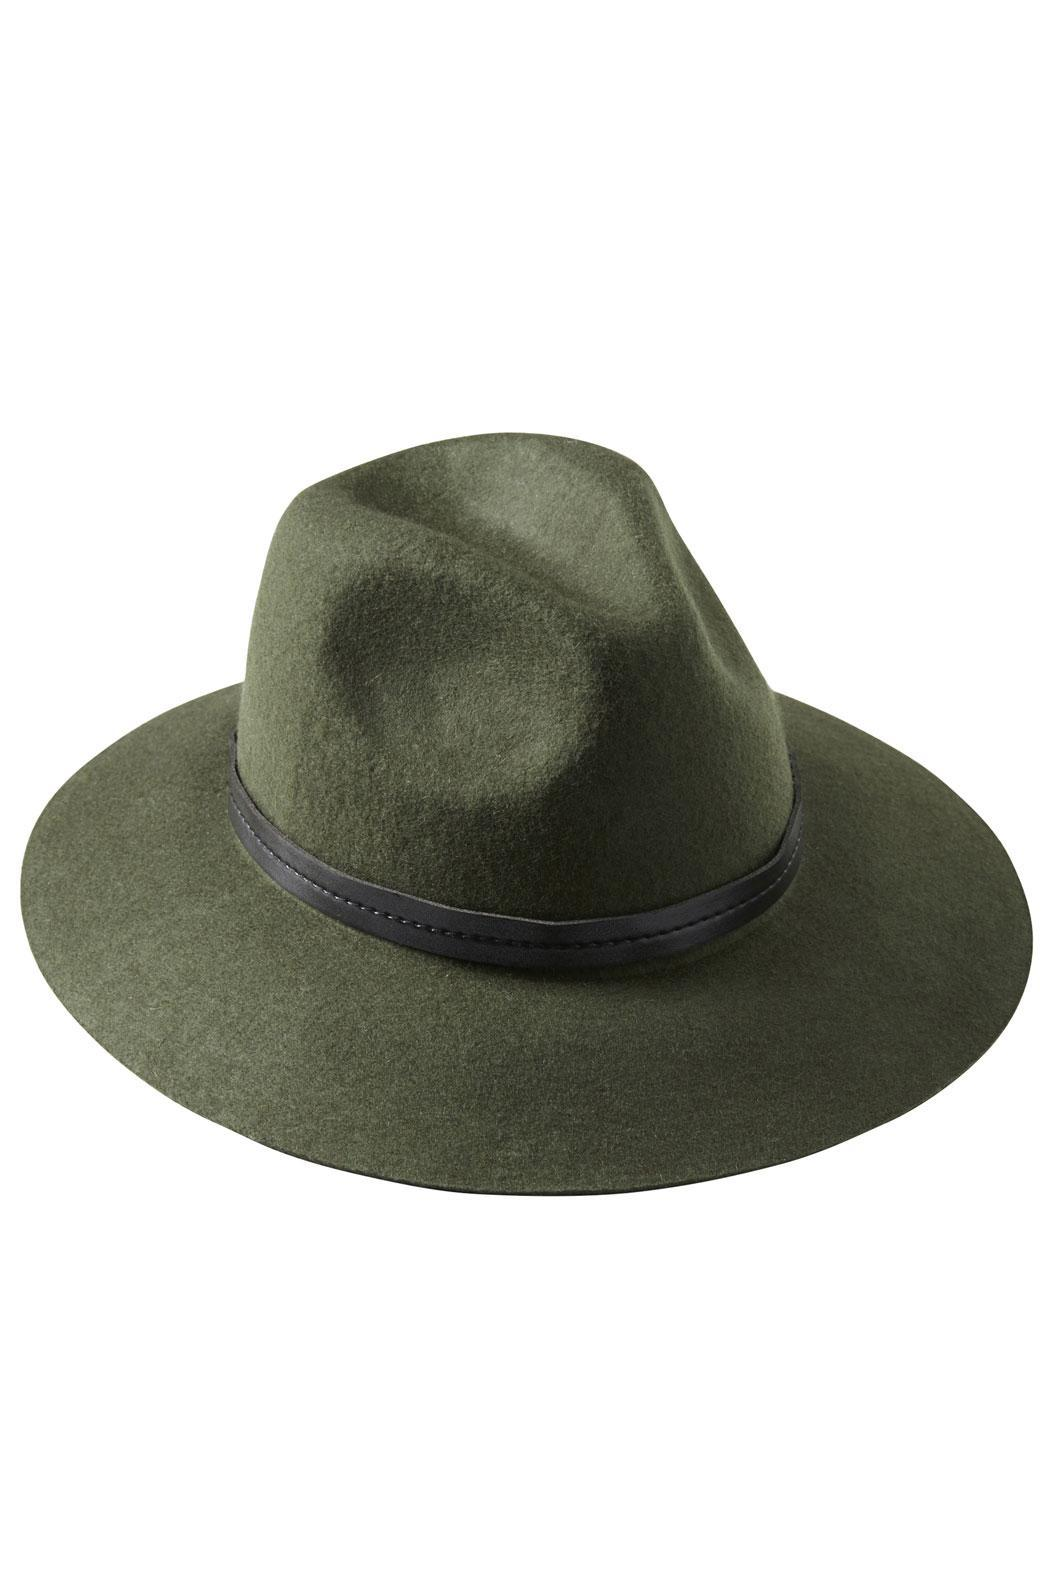 Minimum Hunter Fedora Hat from Netherlands by IWSBS — Shoptiques 6ed2f9e1cbd